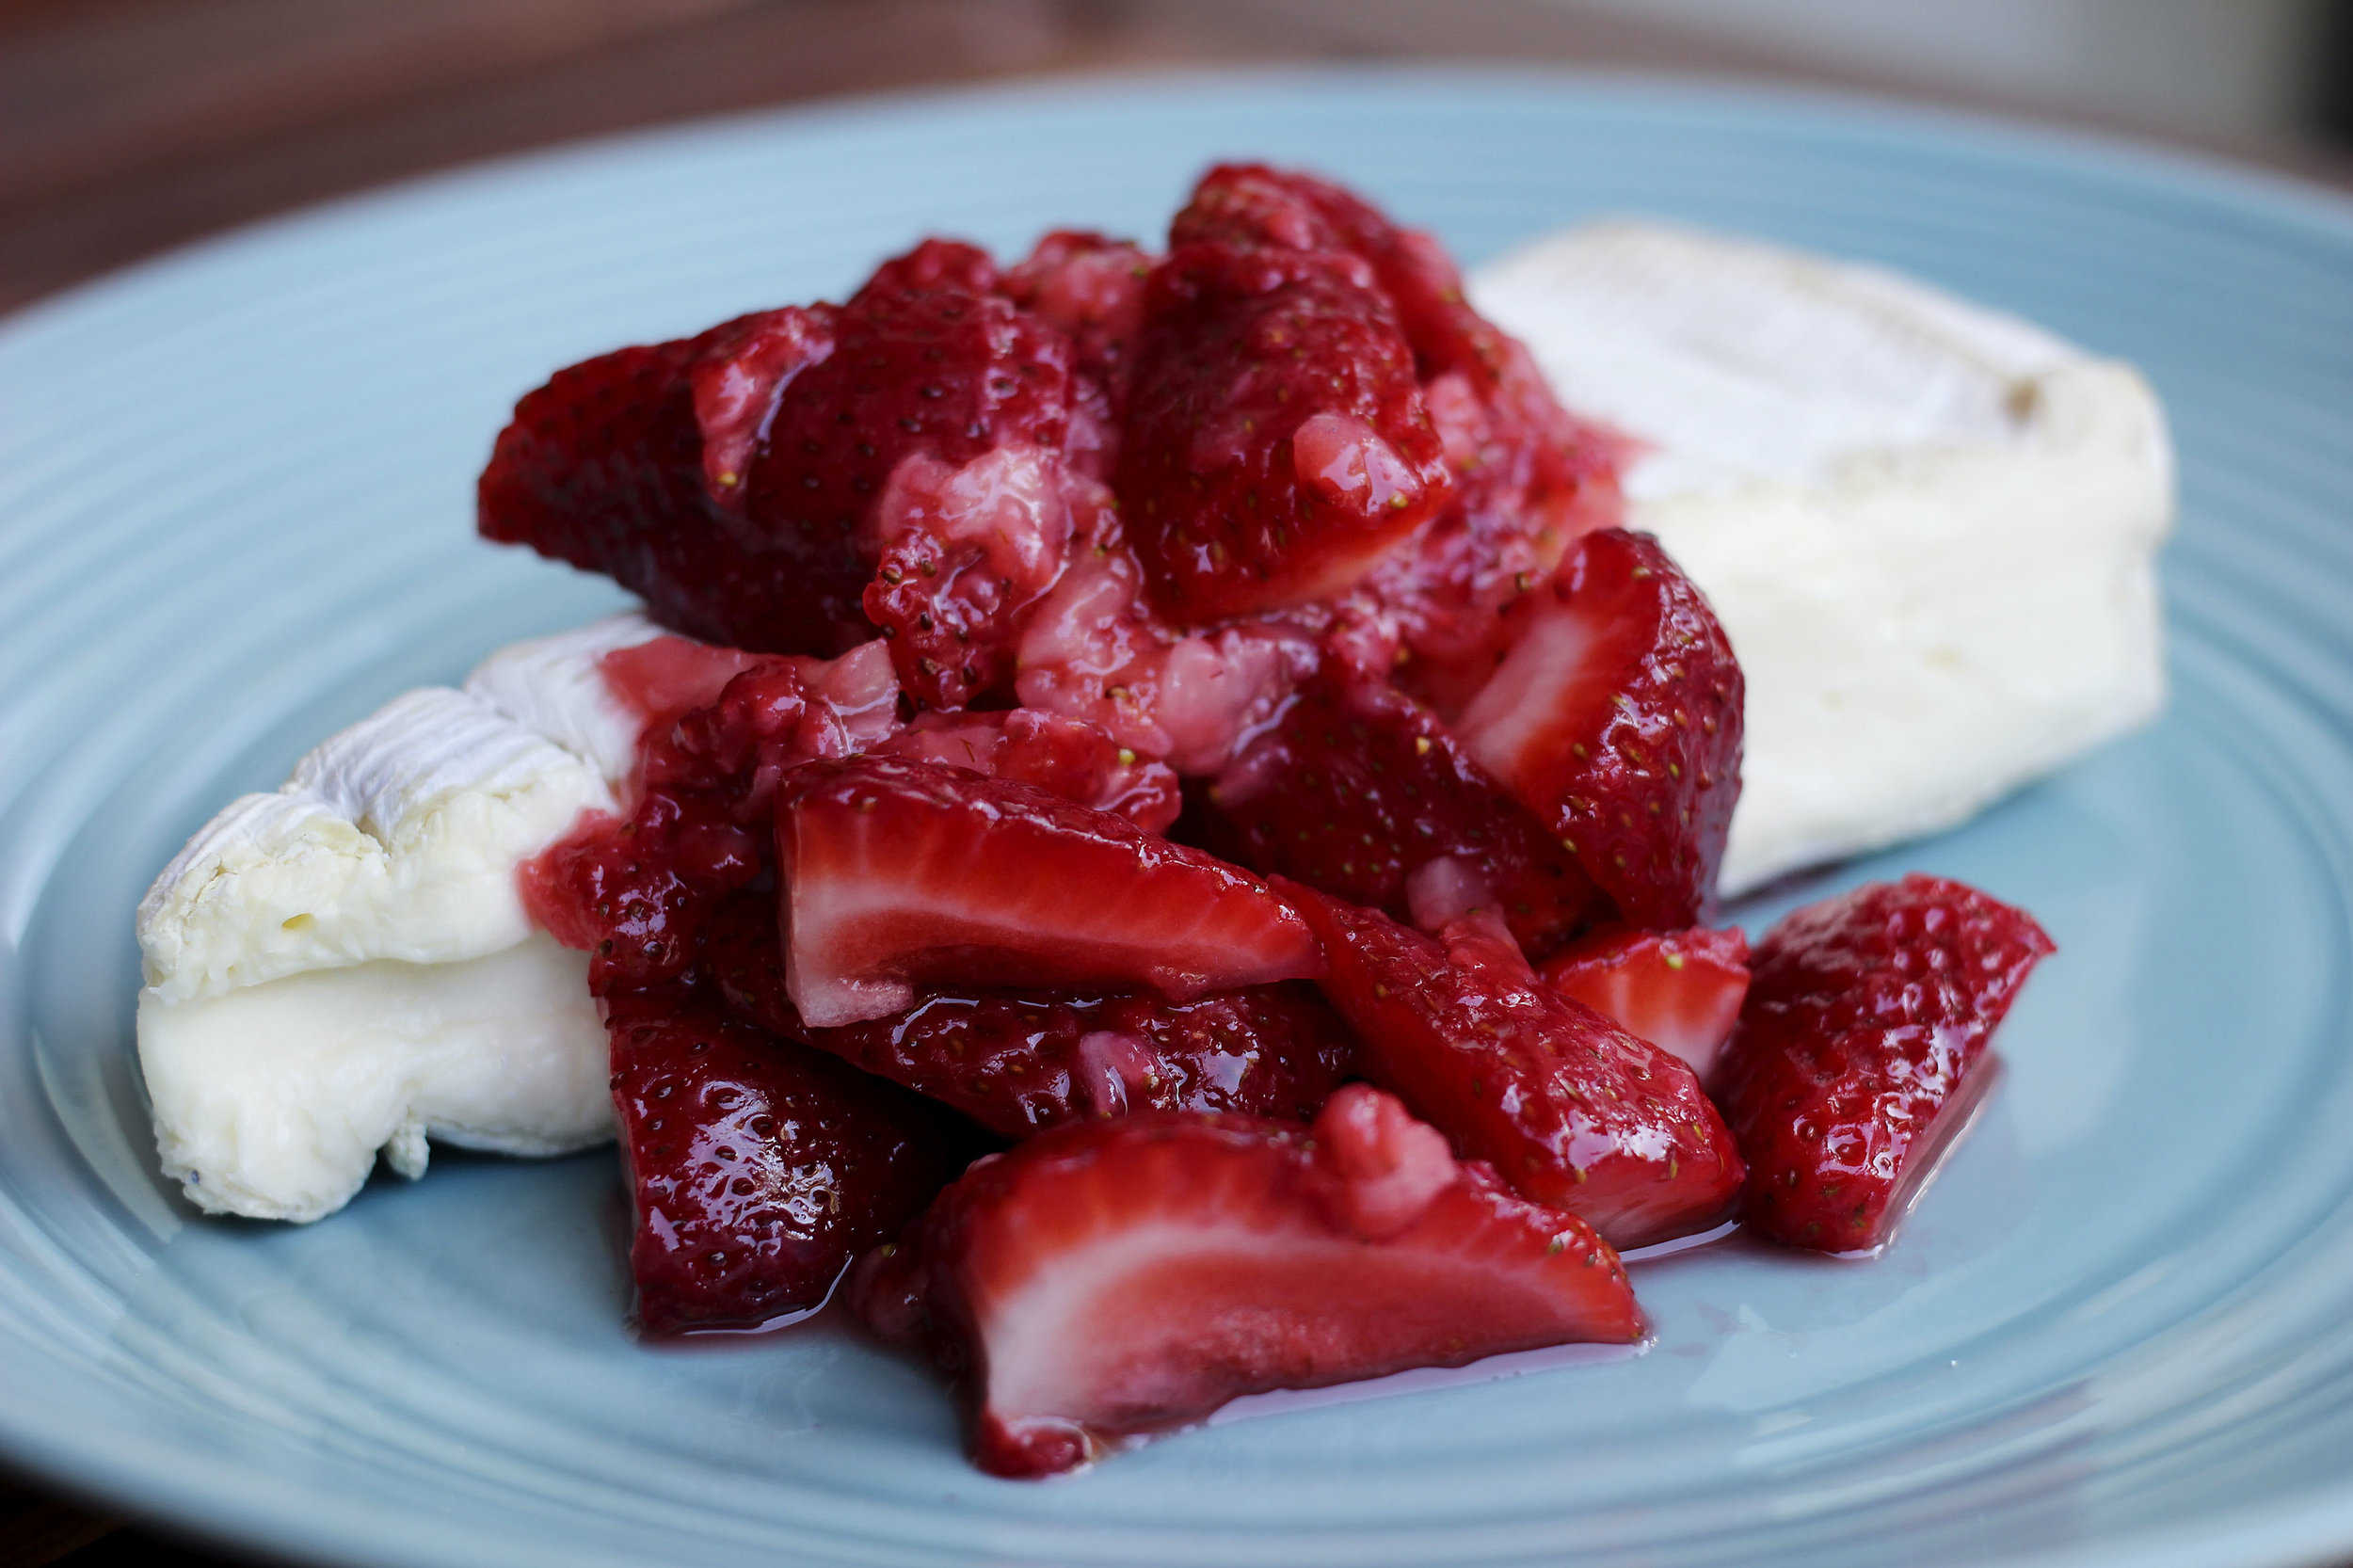 I macerated some strawberries to eat with the Brie . This was eaten with sunflower/flaxseed crackers. Drizzling some honey is also delightful.